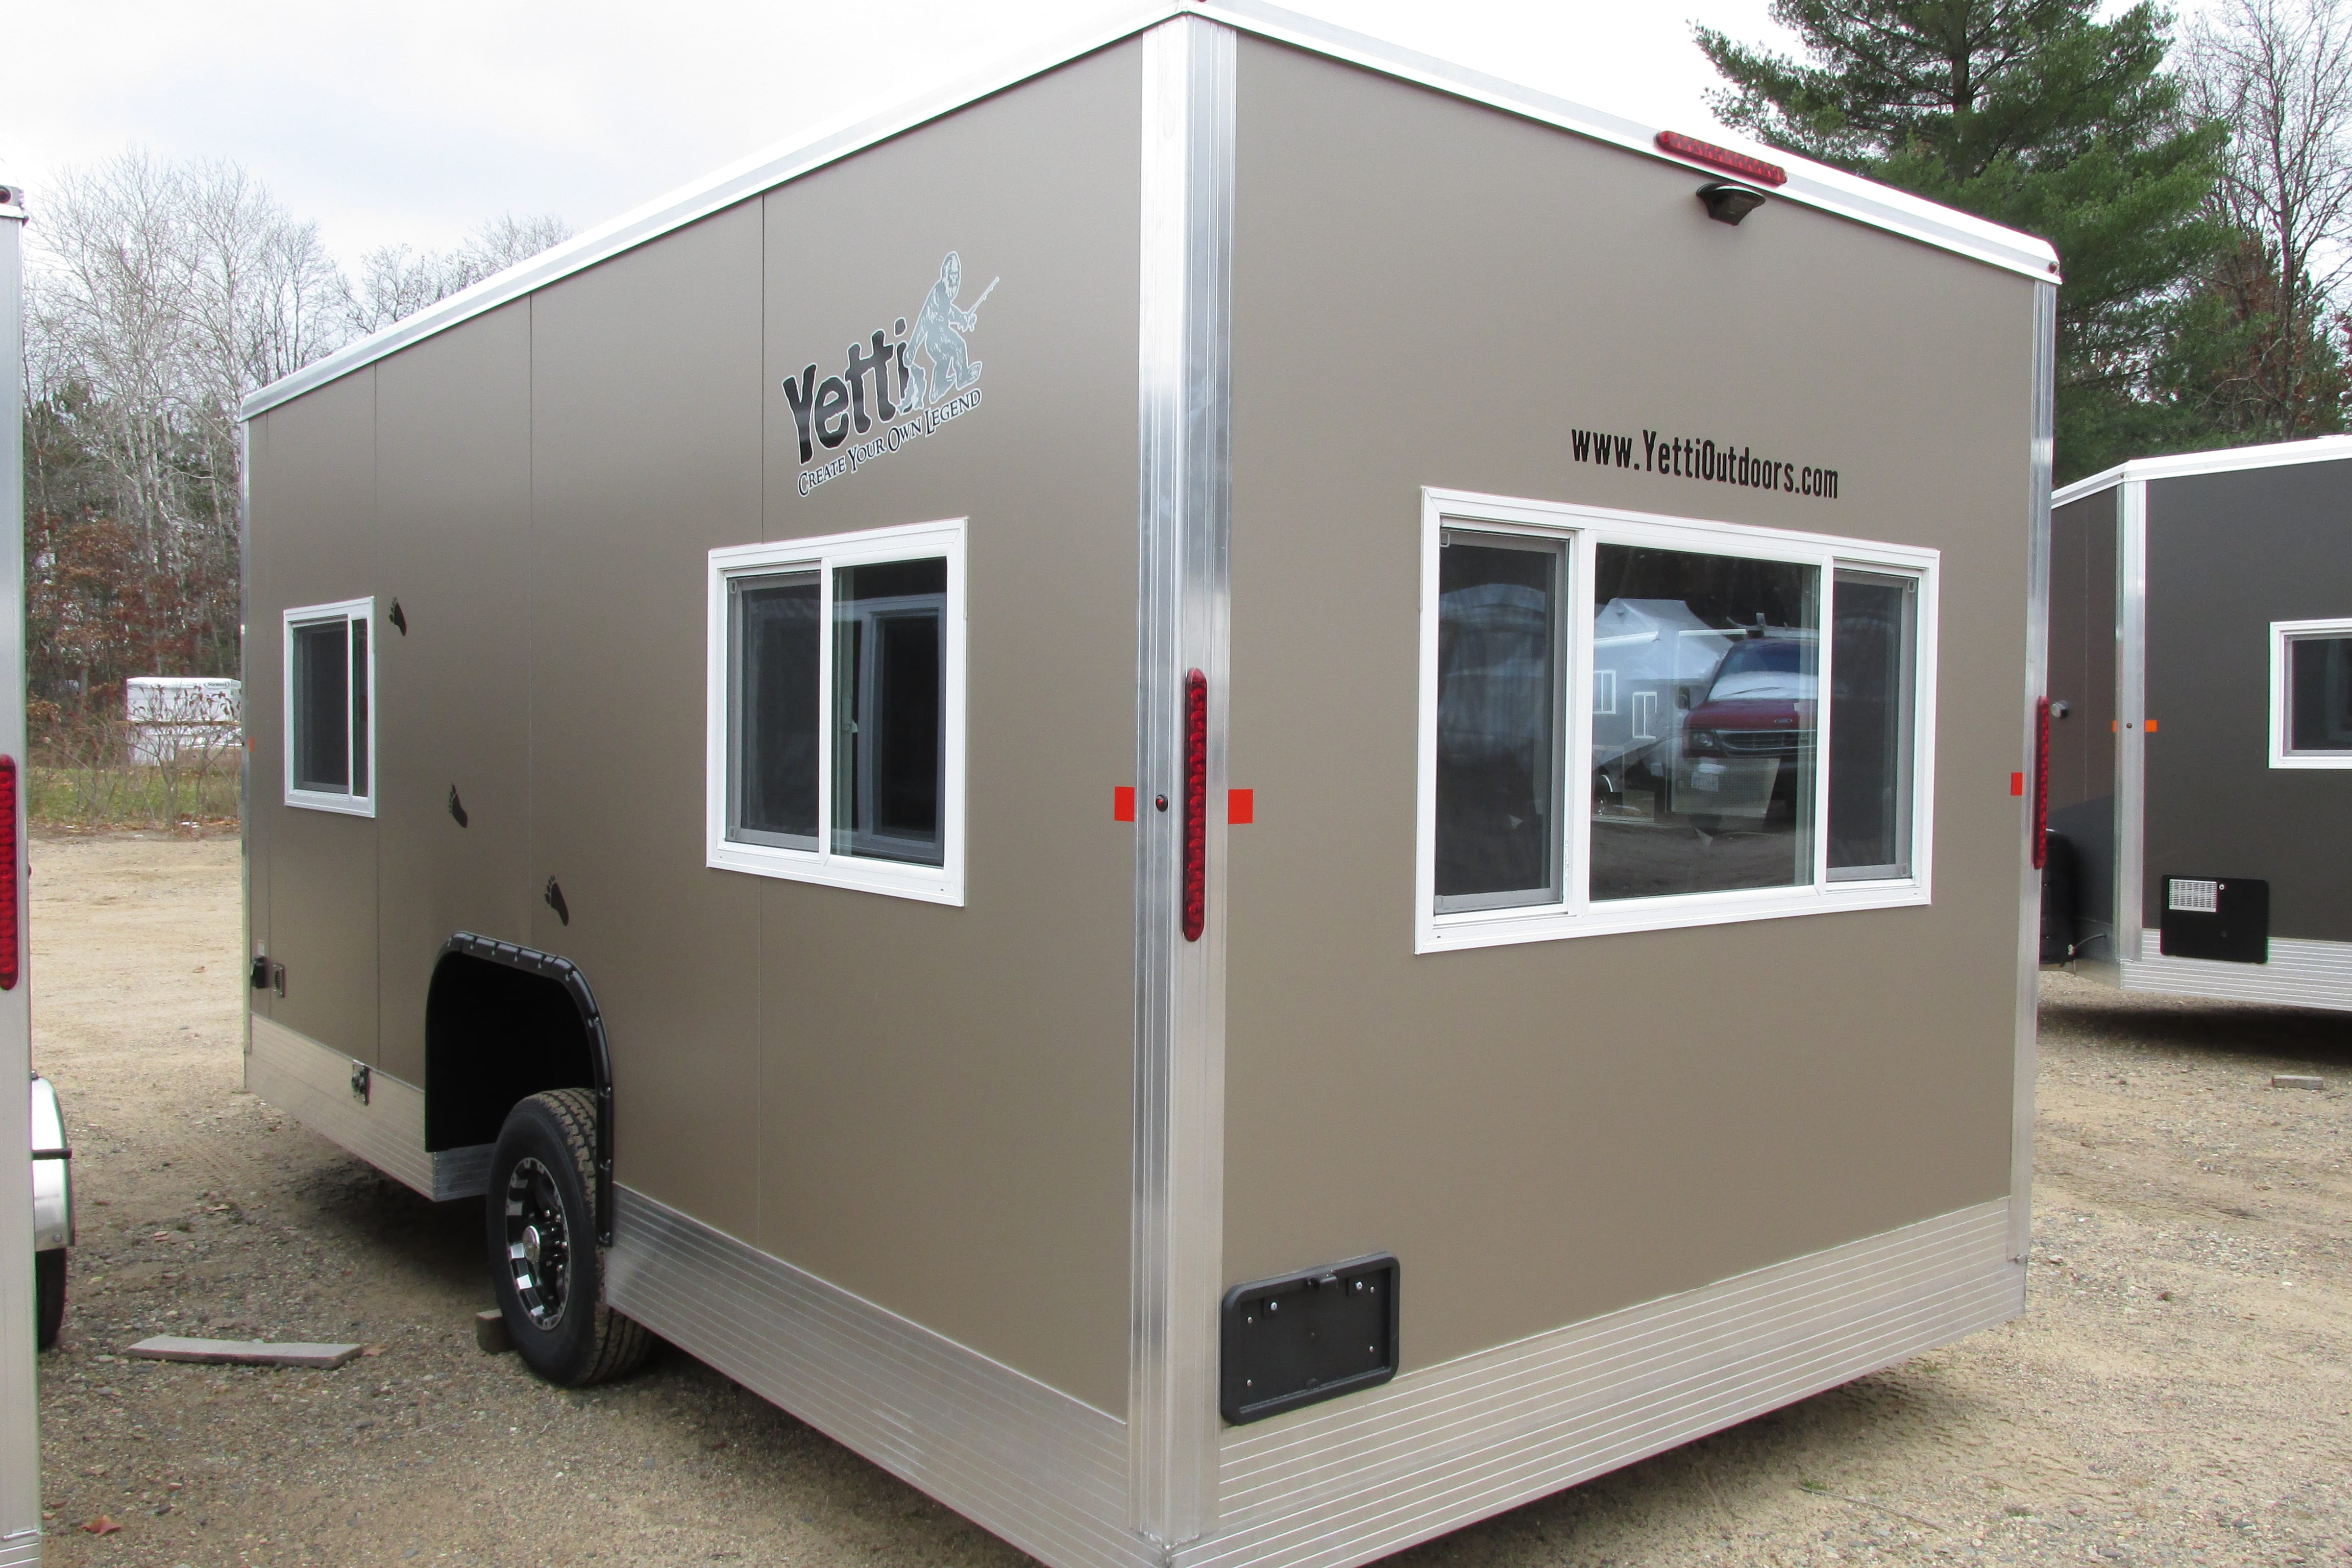 2018 Single Axle Yetti Fish House For Sale In Minnesota